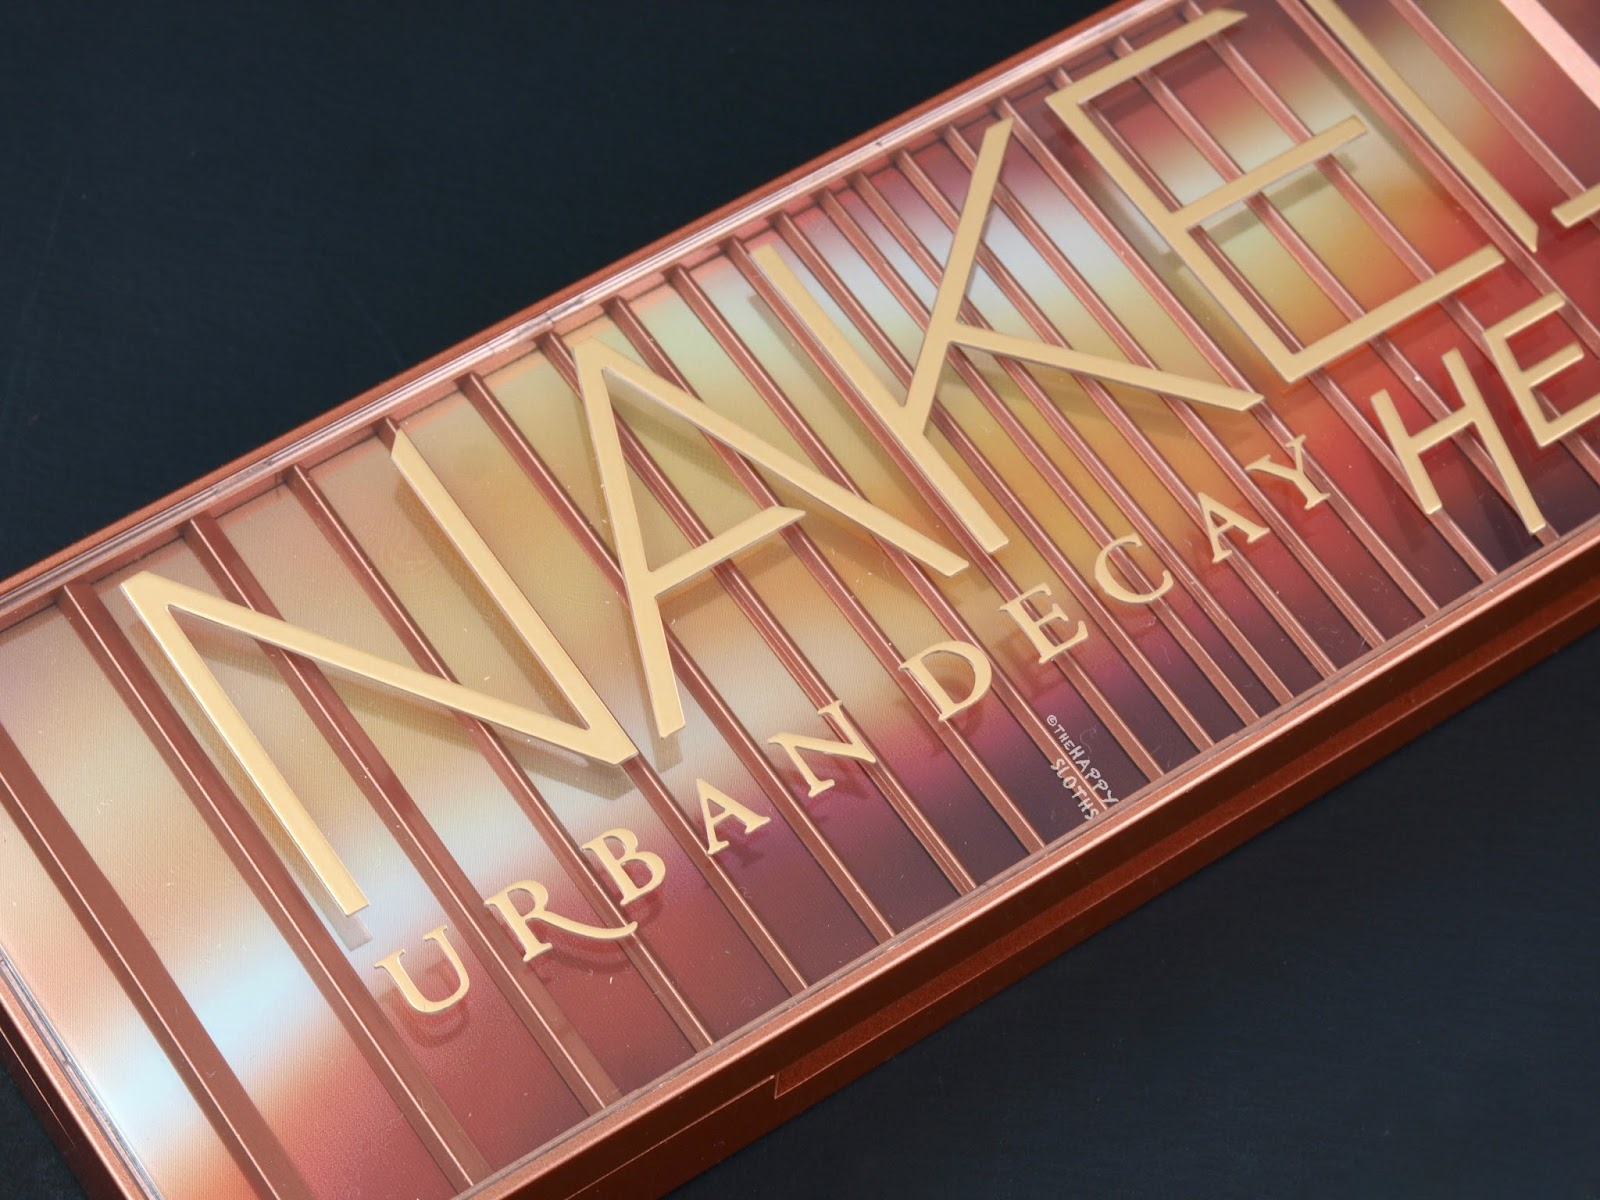 Urban Decay Naked Heat Eyeshadow Palette Swatches and Review